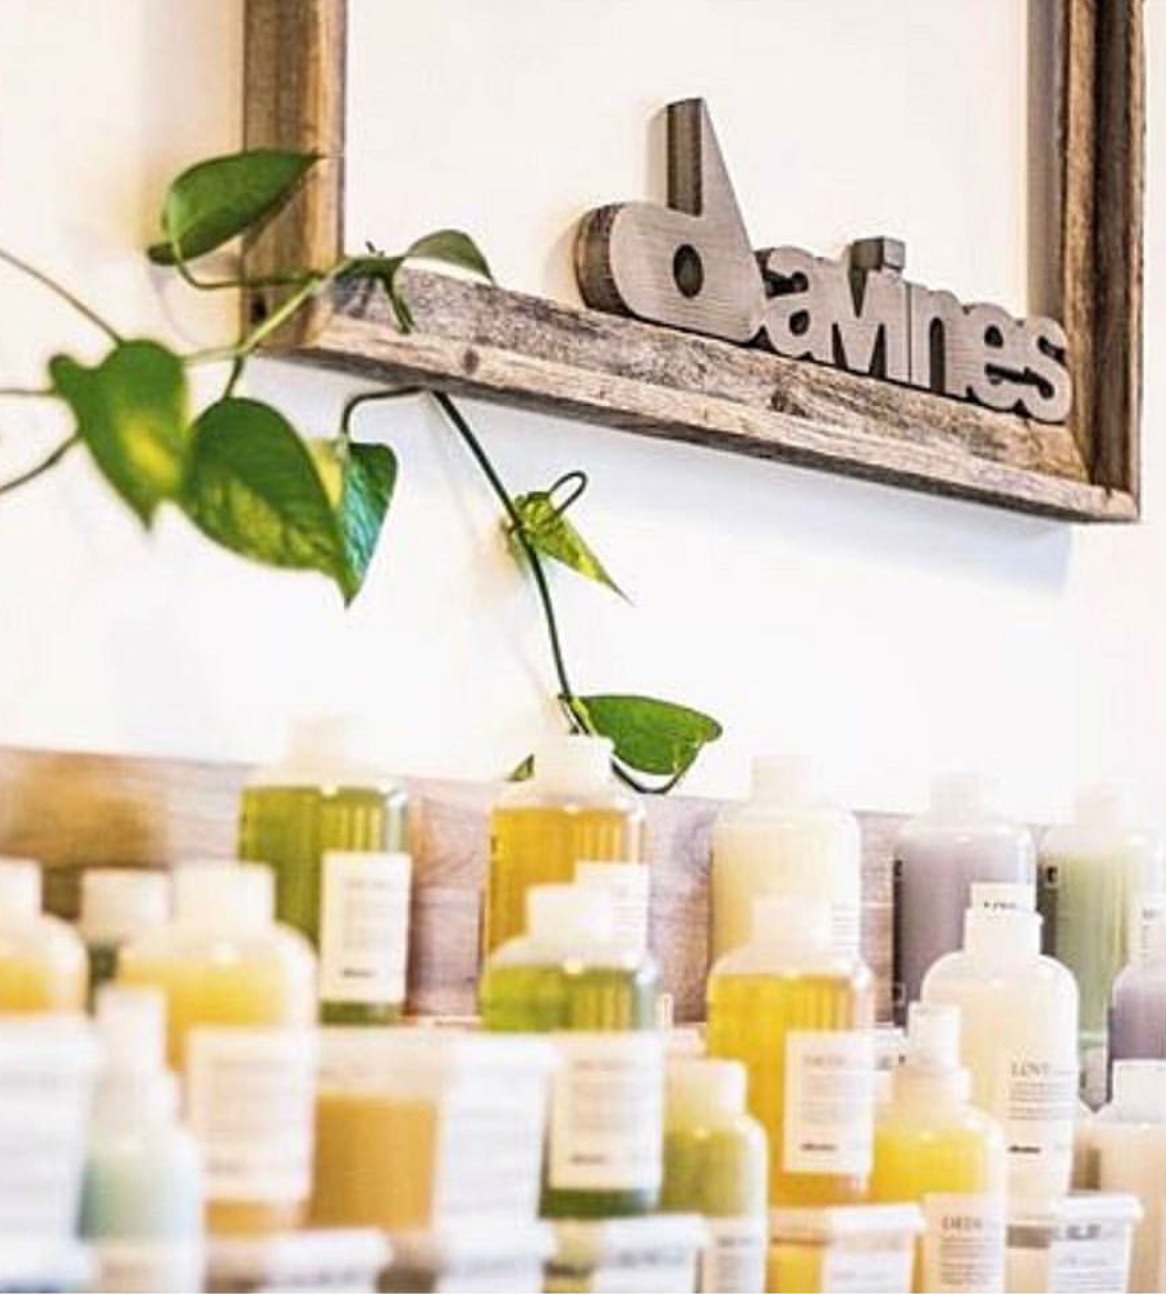 davines+products+pic+2.1.jpg